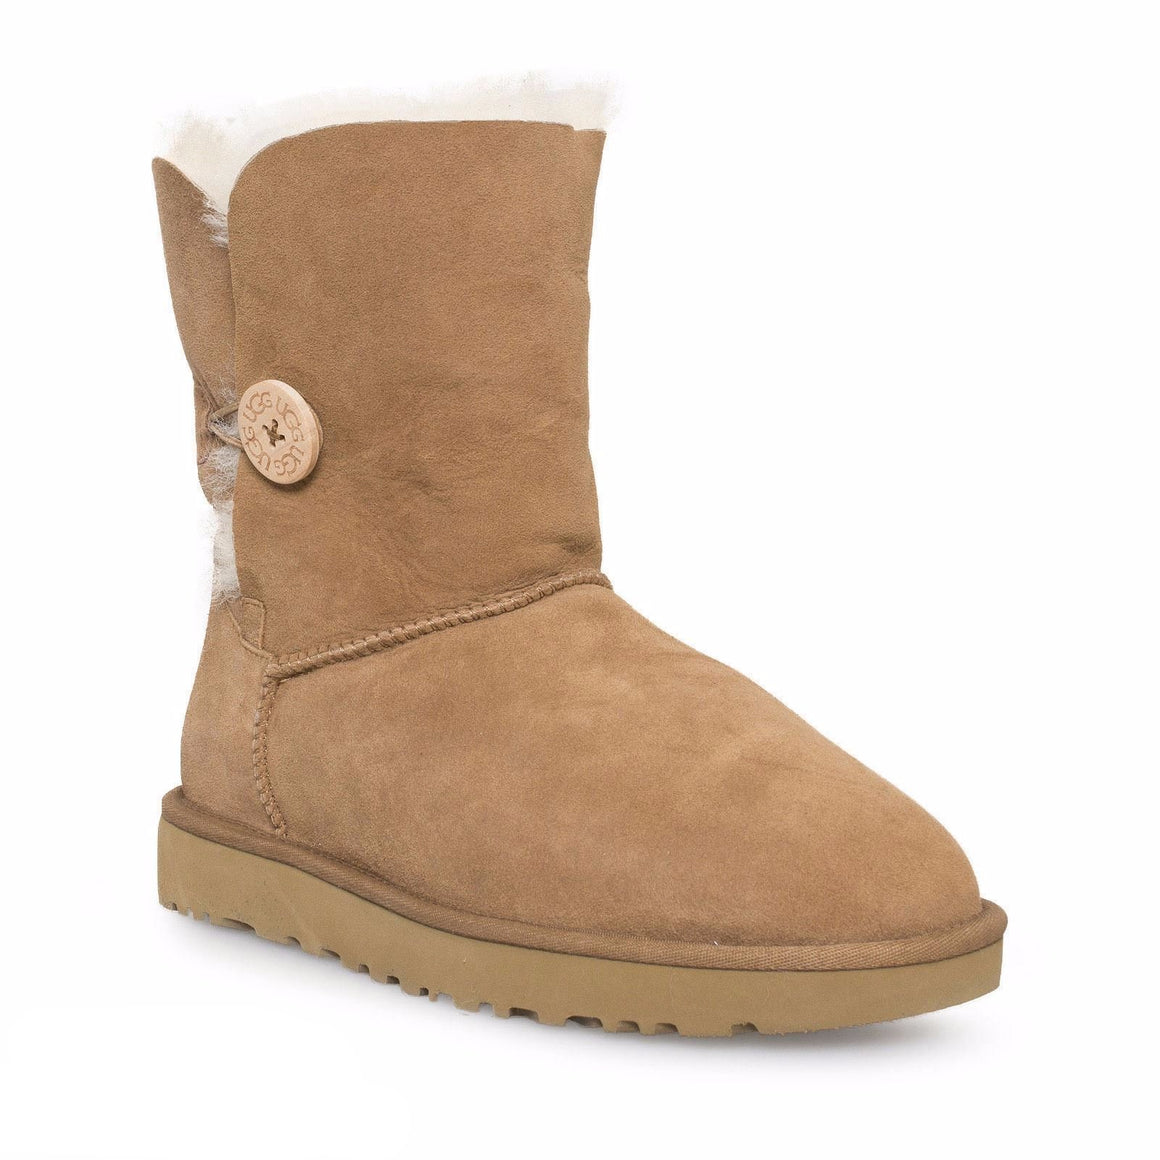 UGG Bailey Button II Chestnut Boots - Youth